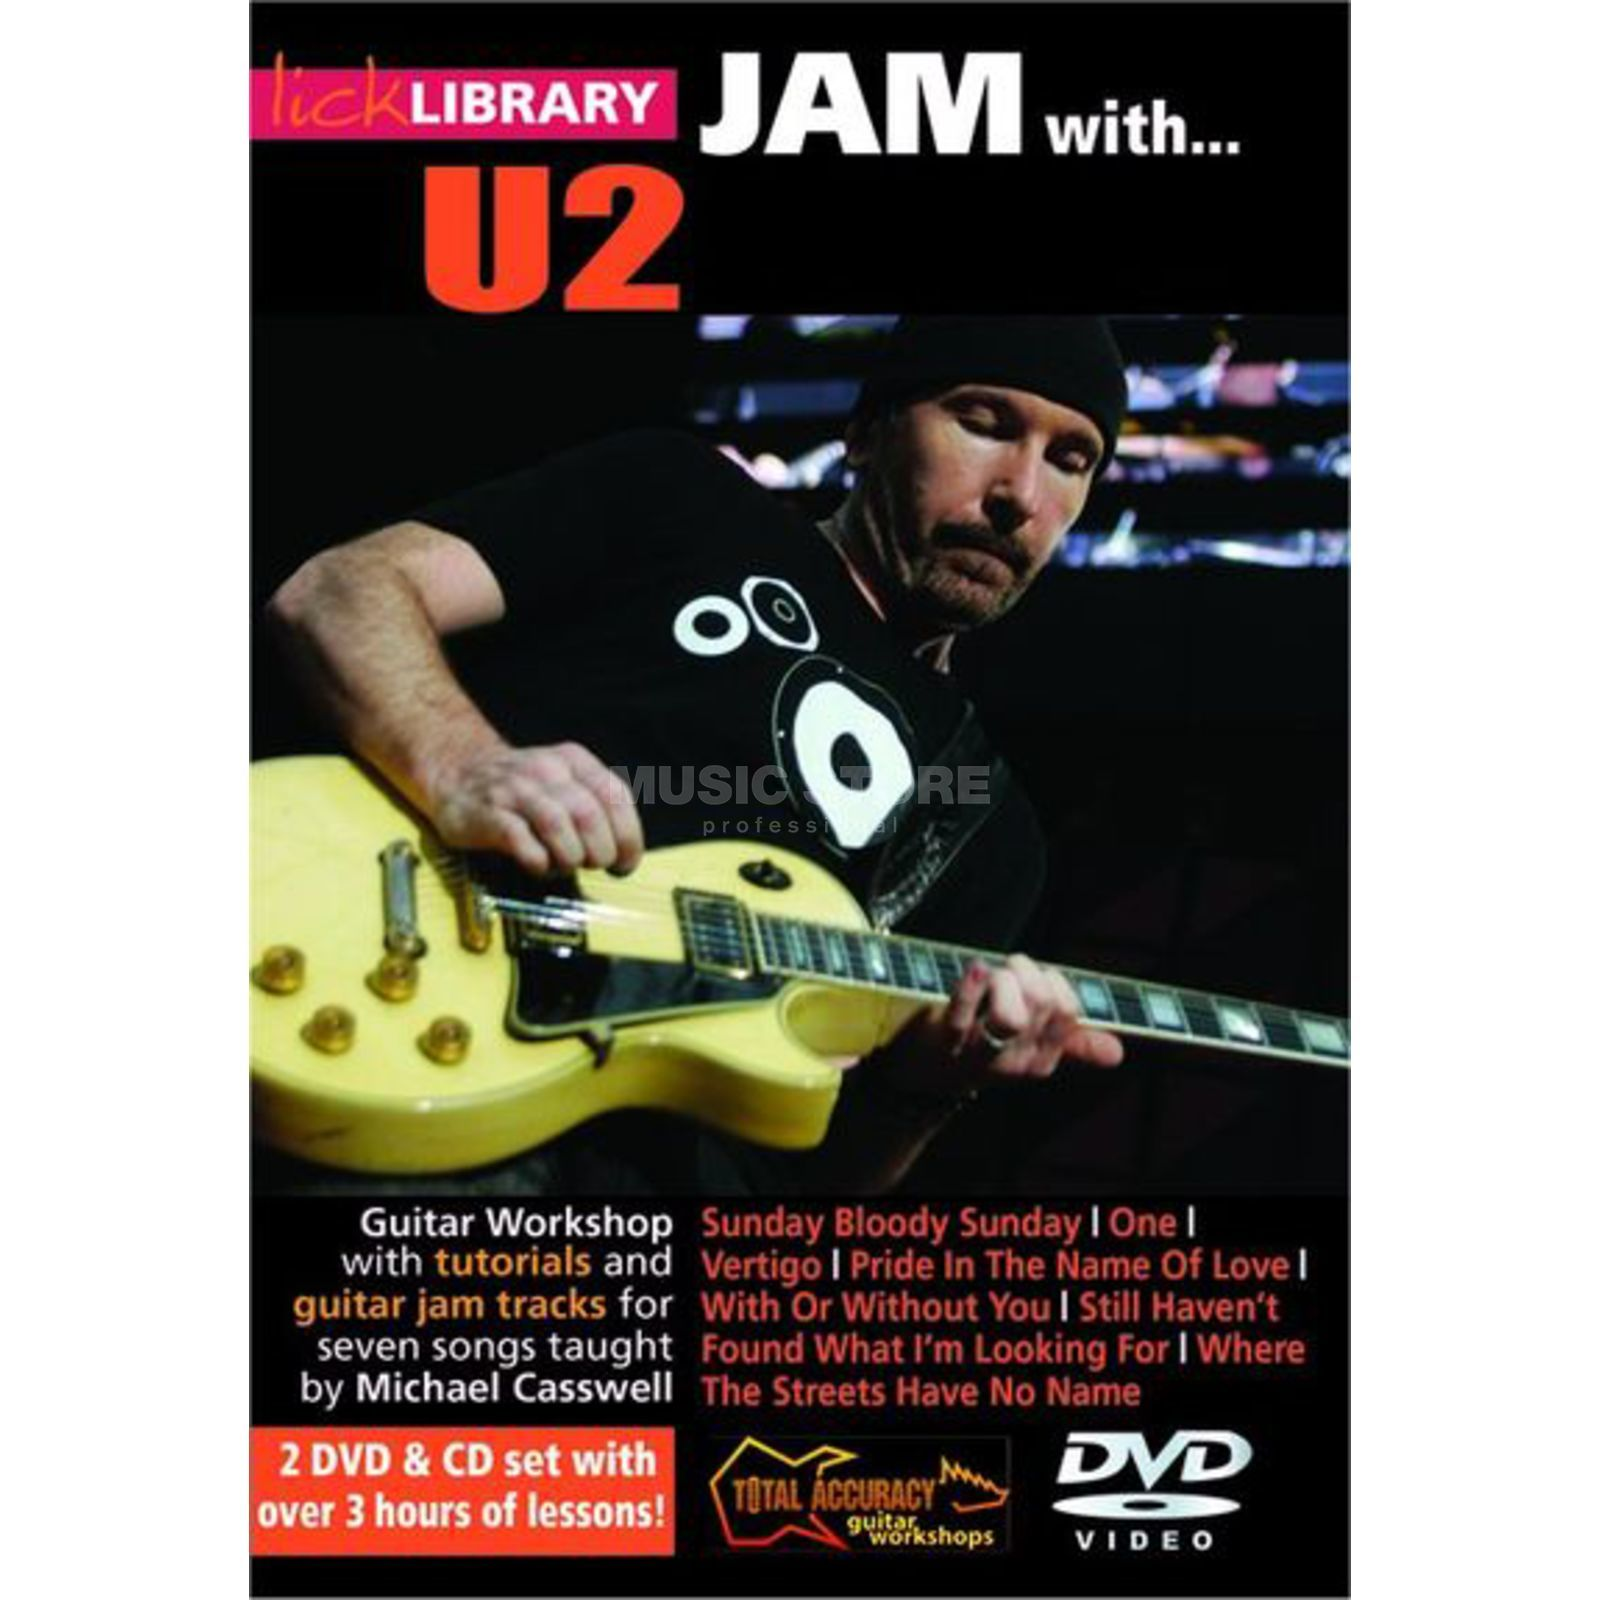 Roadrock International Lick Library: Jam With U2 DVD, CD Produktbillede